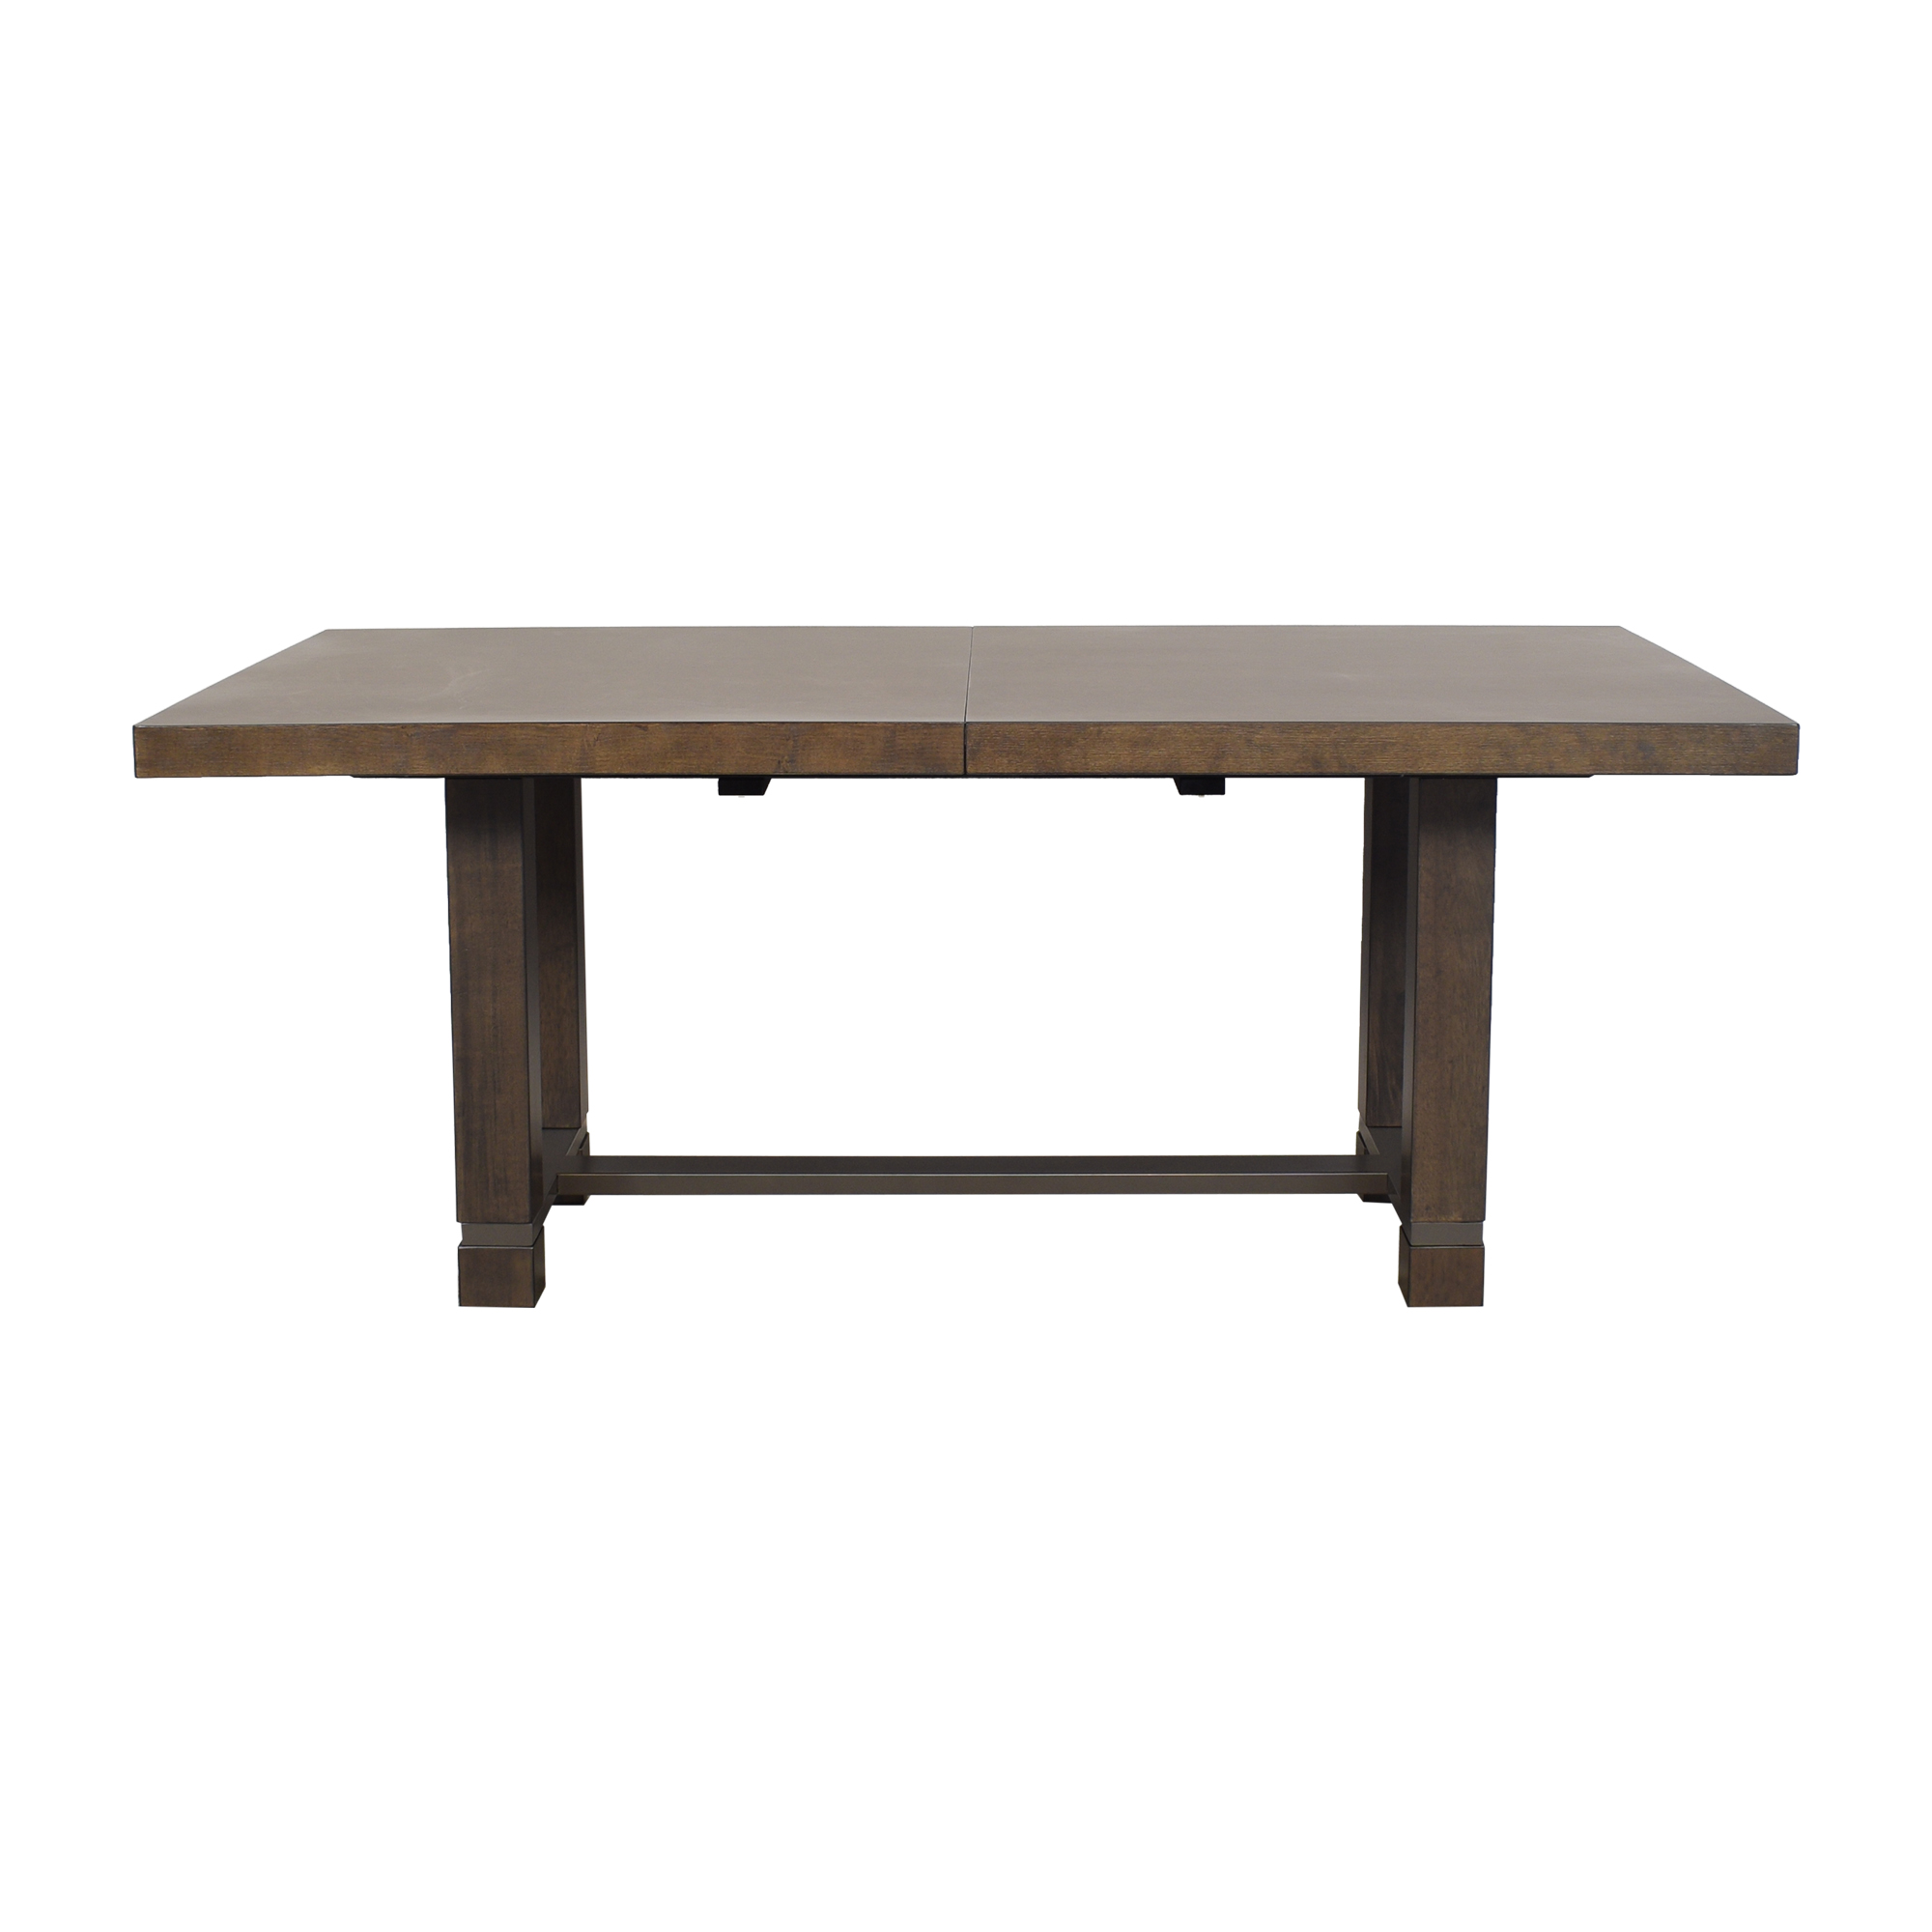 Raymour & Flanigan Raymour & Flanigan Andell Dining Table ct